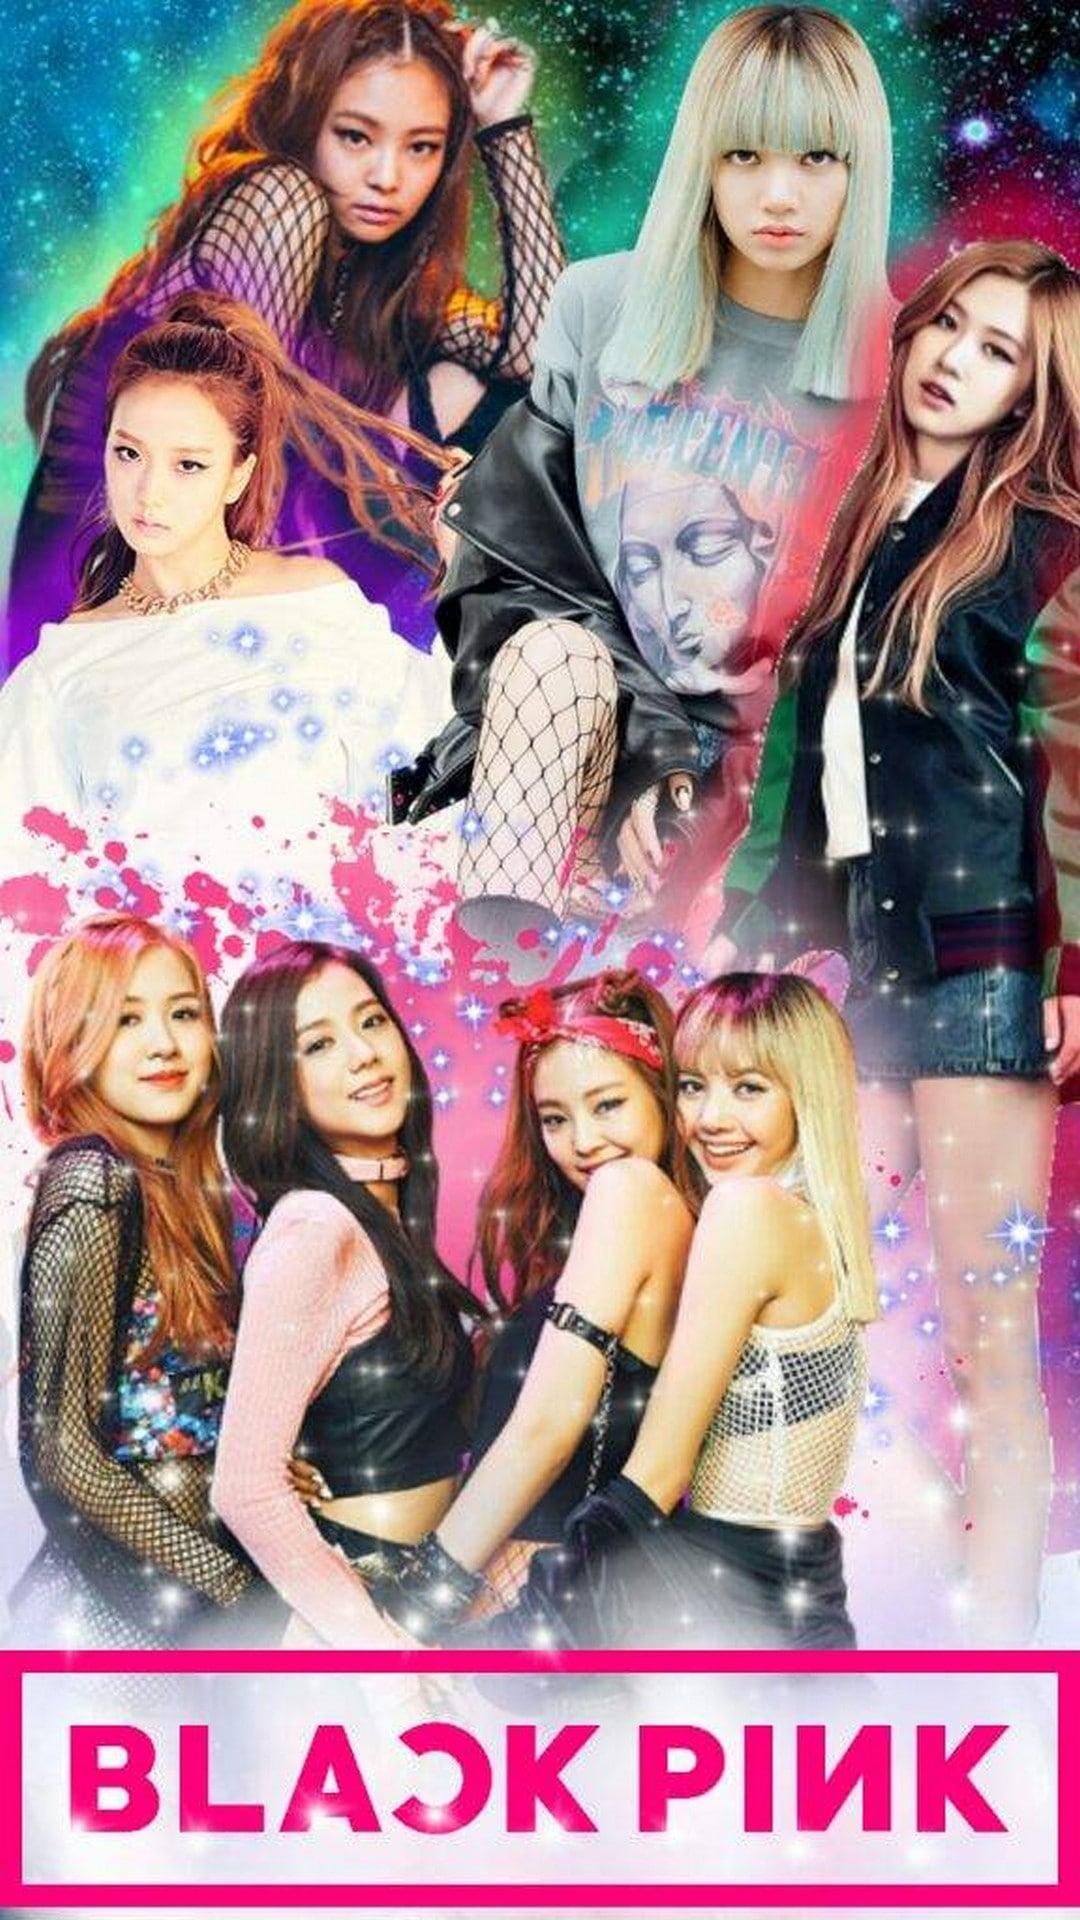 Blackpink Iphone Wallpapers Kolpaper Awesome Free Hd Wallpapers